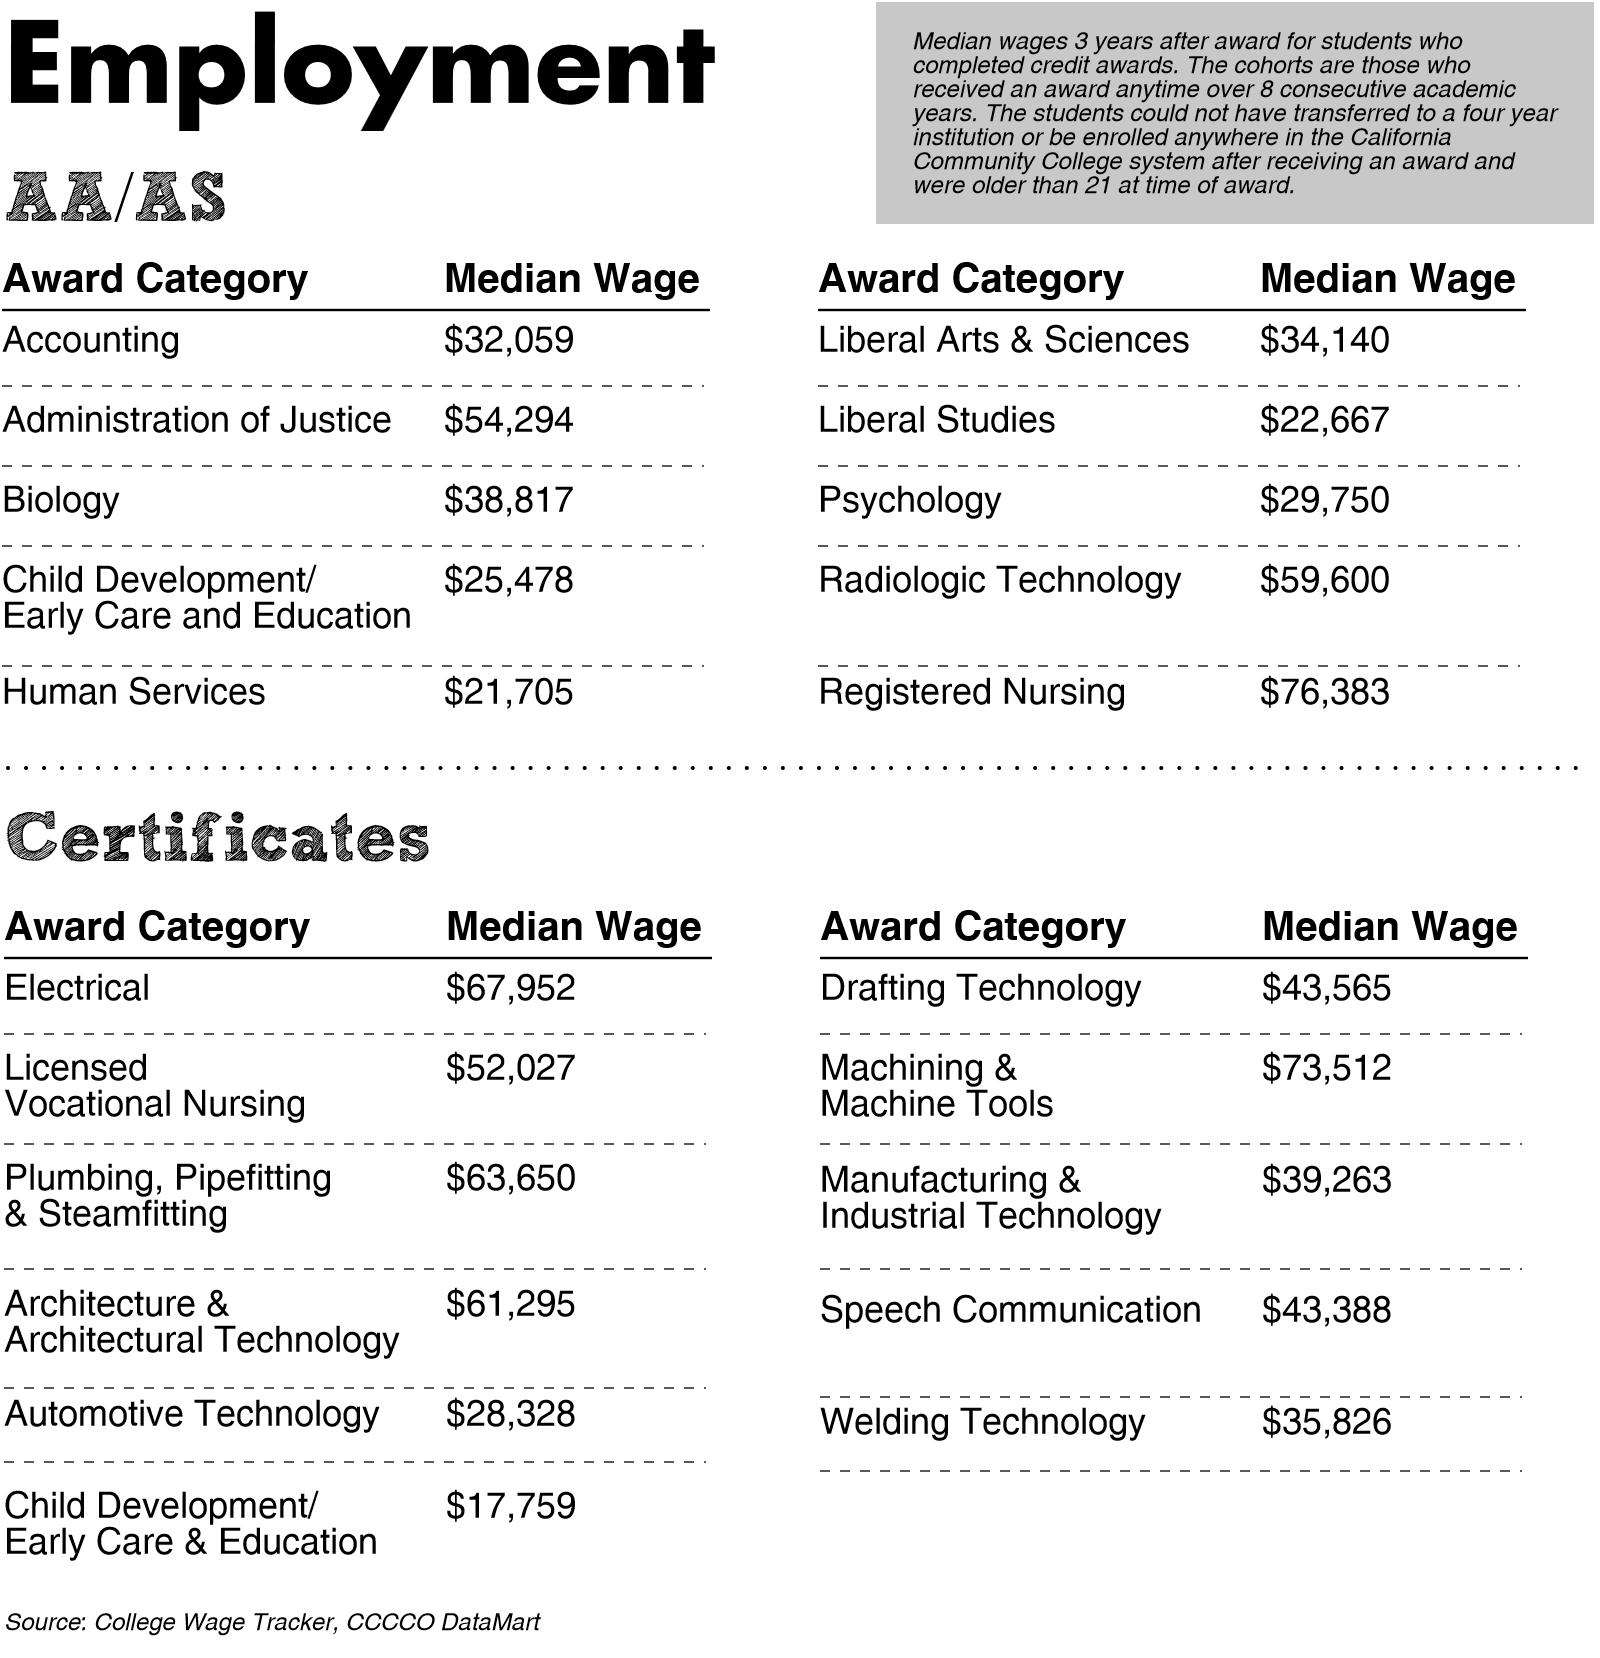 Median wages for various certificates and AA/AS degrees